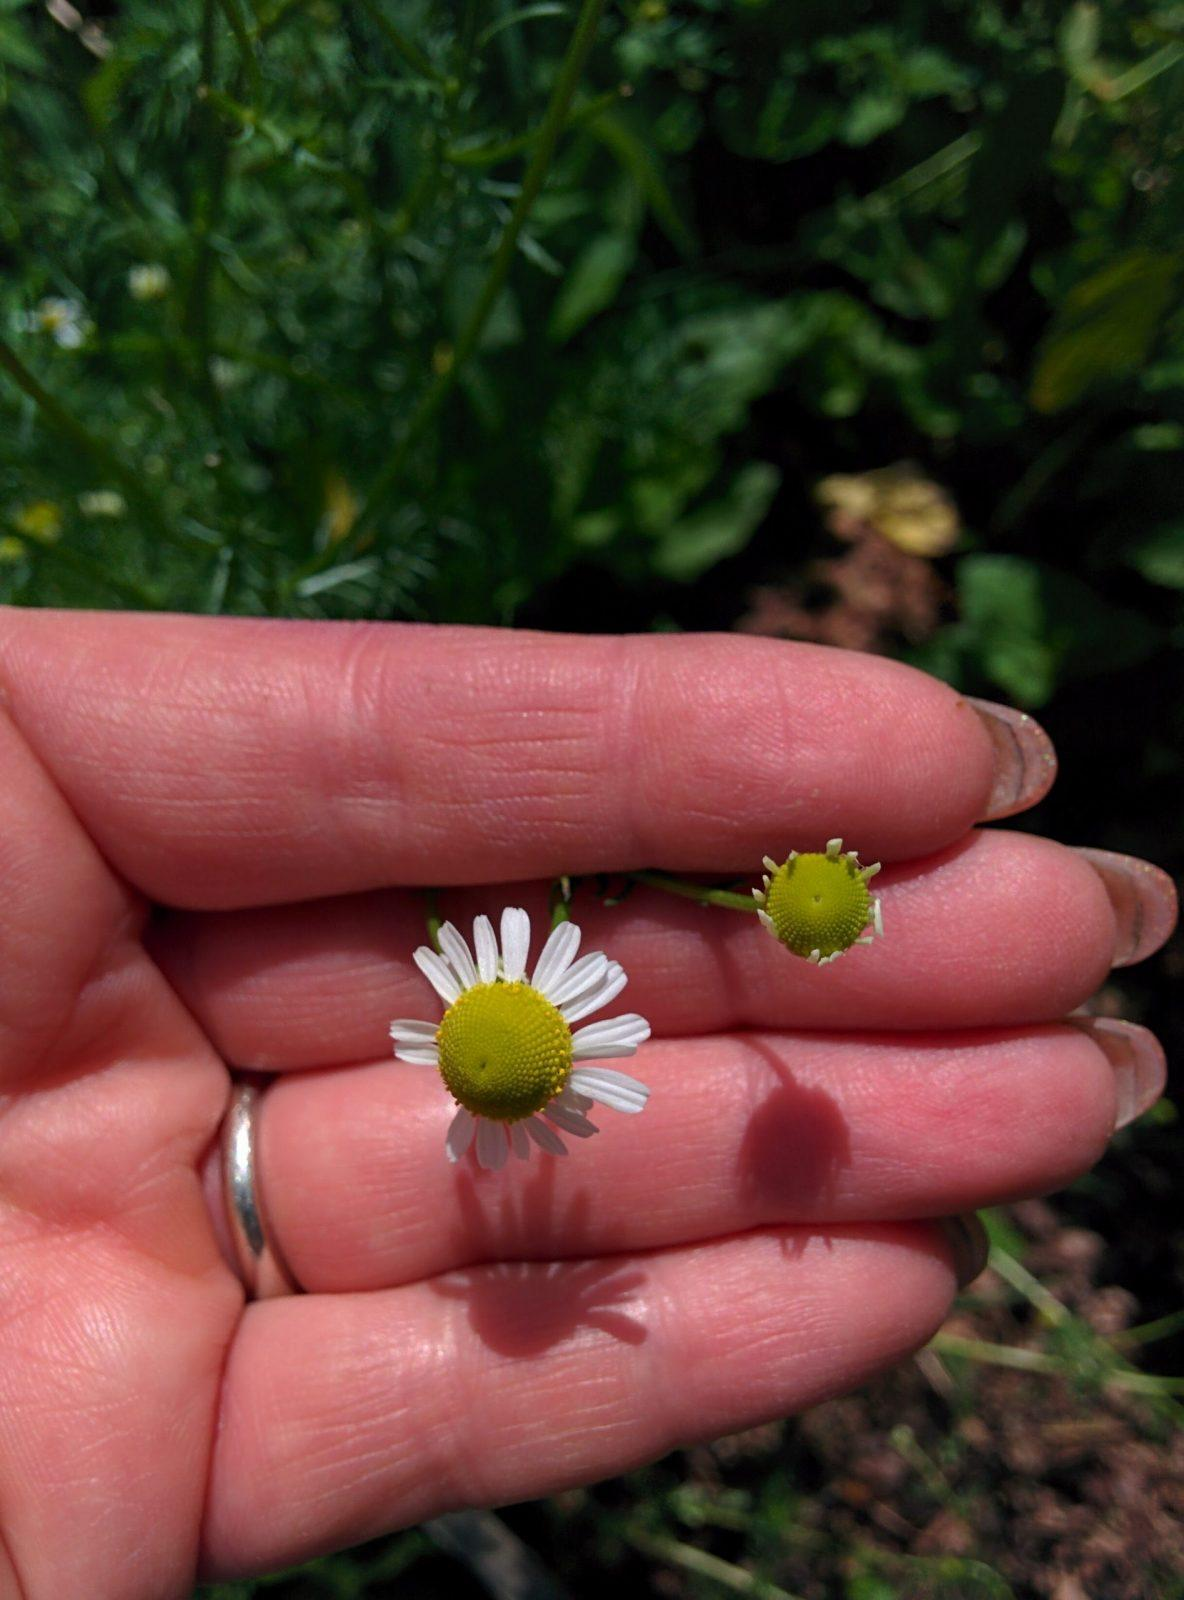 chamomile flowers, one with petals open and the other is a new flower